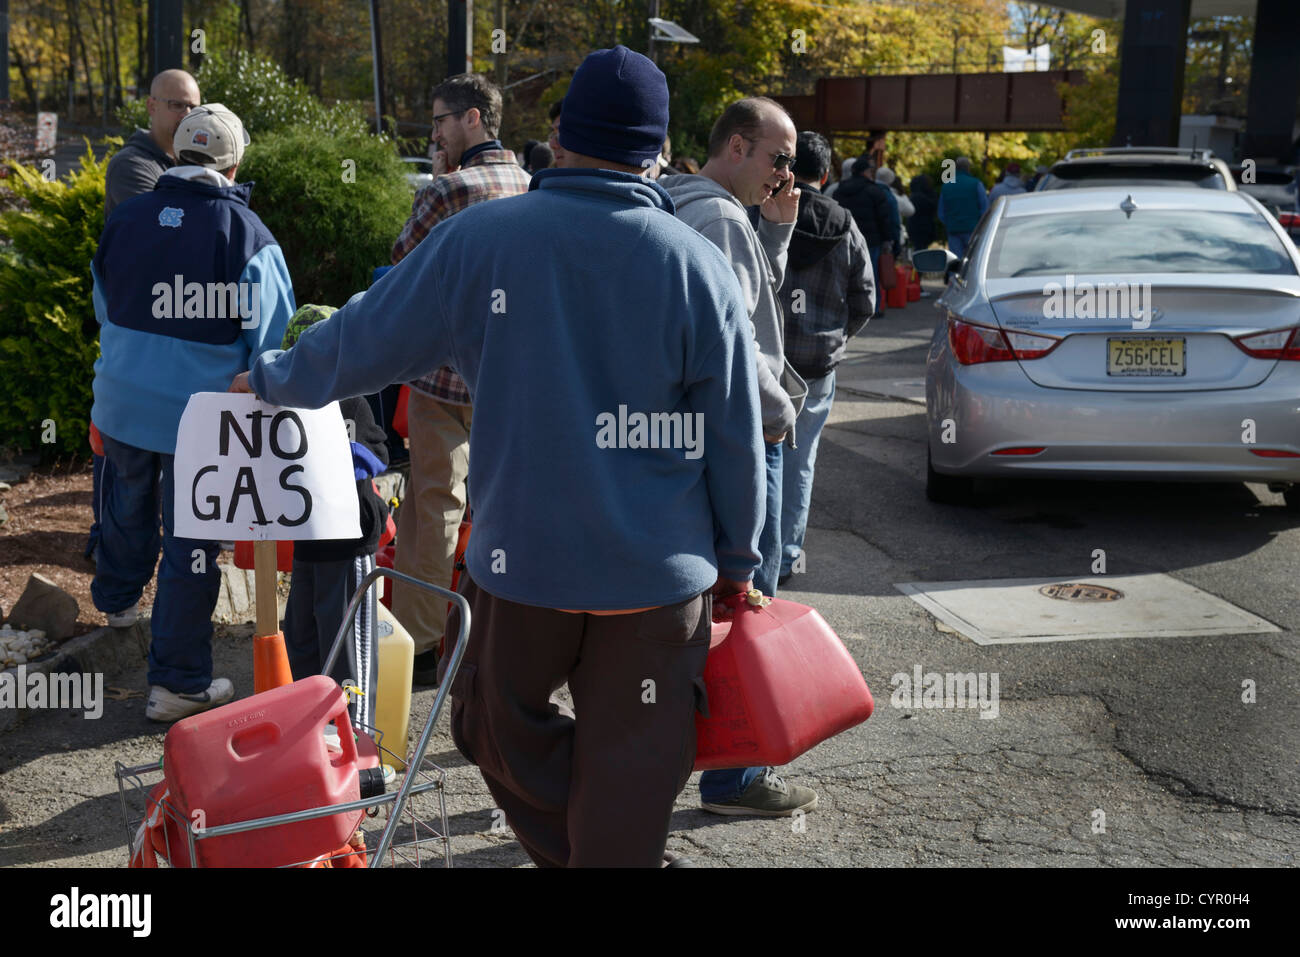 Line at gas station after Hurricane Sandy, northern NJ.  People with cans waiting to get gas for cars and generators. - Stock Image